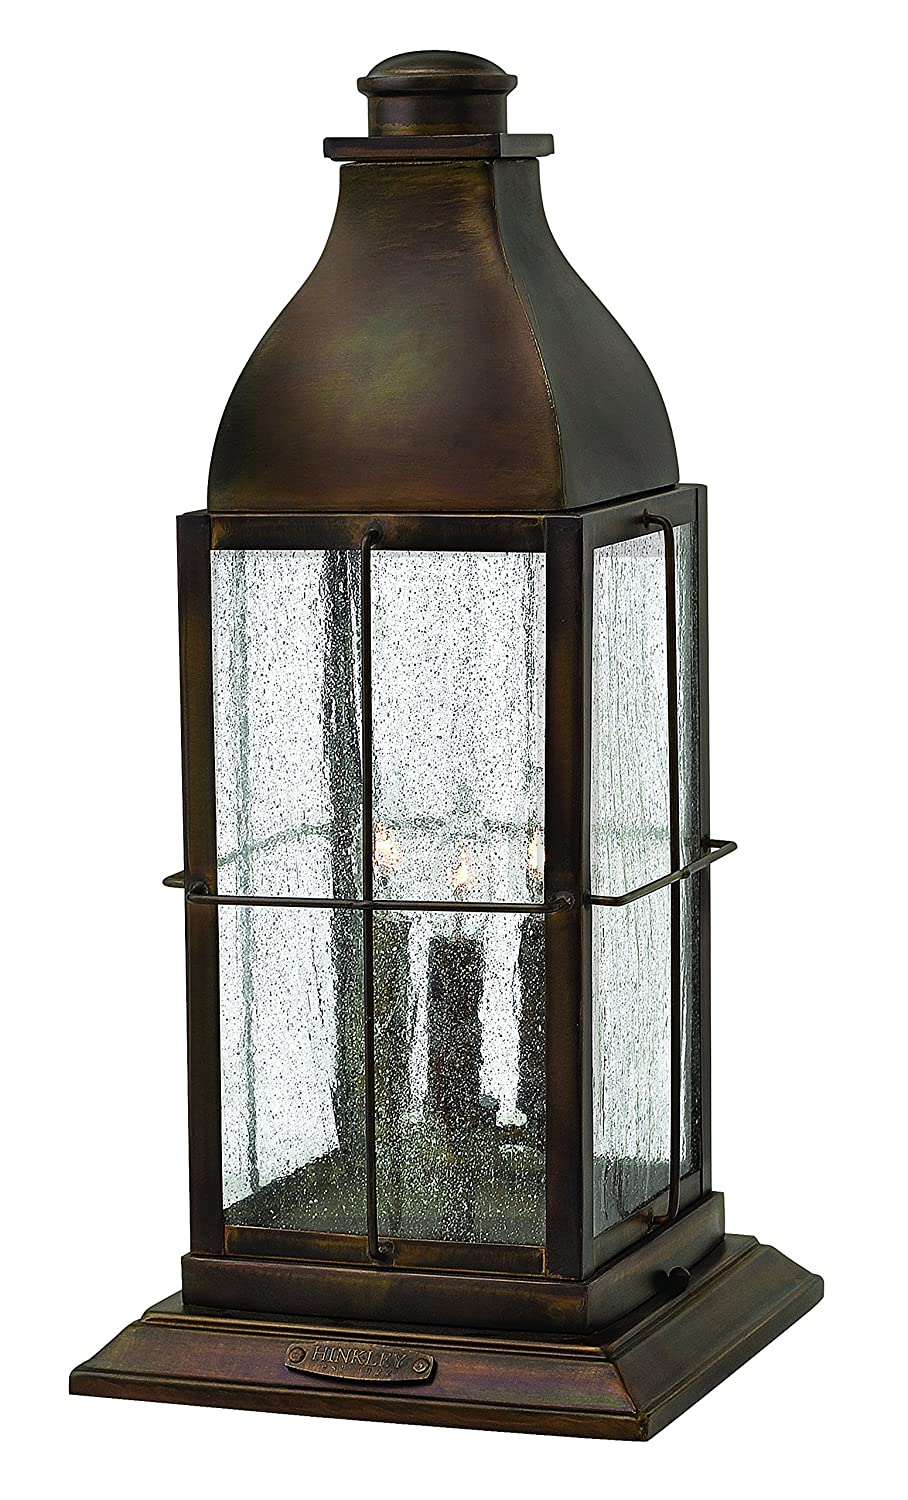 Hinkley 2047SN Outdoor Bingham Light by Hinkley  B00IHDNZ7M